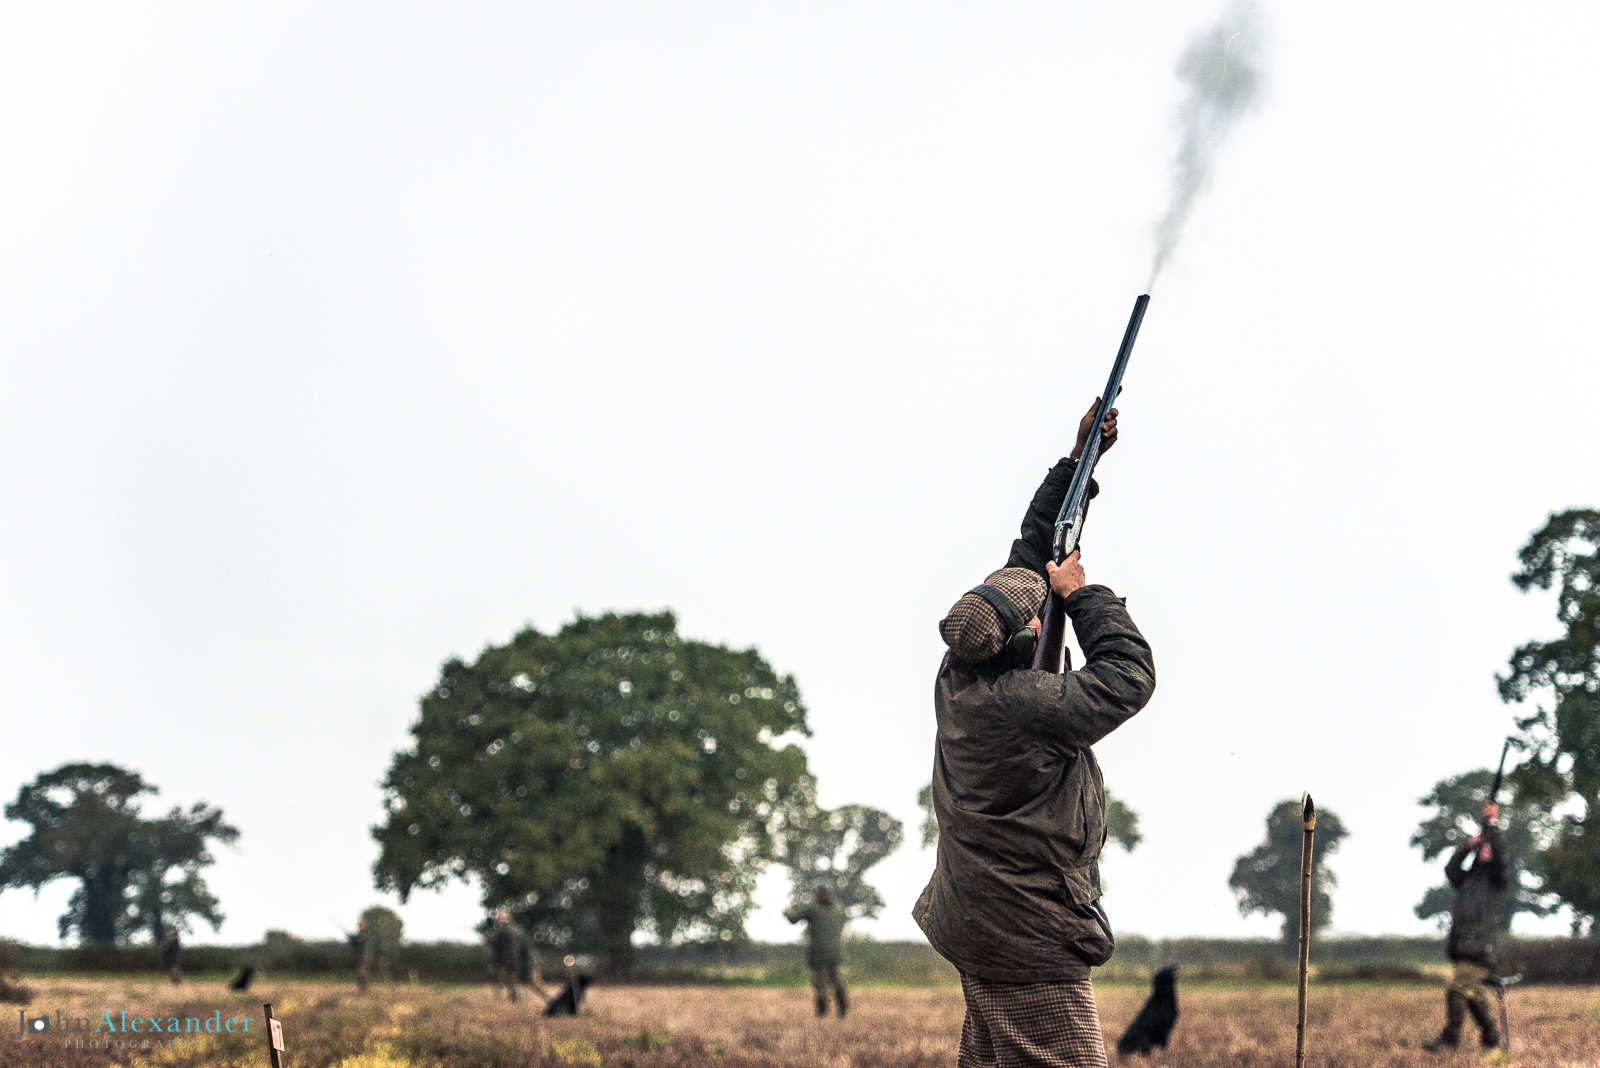 Gun aiming high and firing at pheasants flying overhead on a driven game shoot in the UK